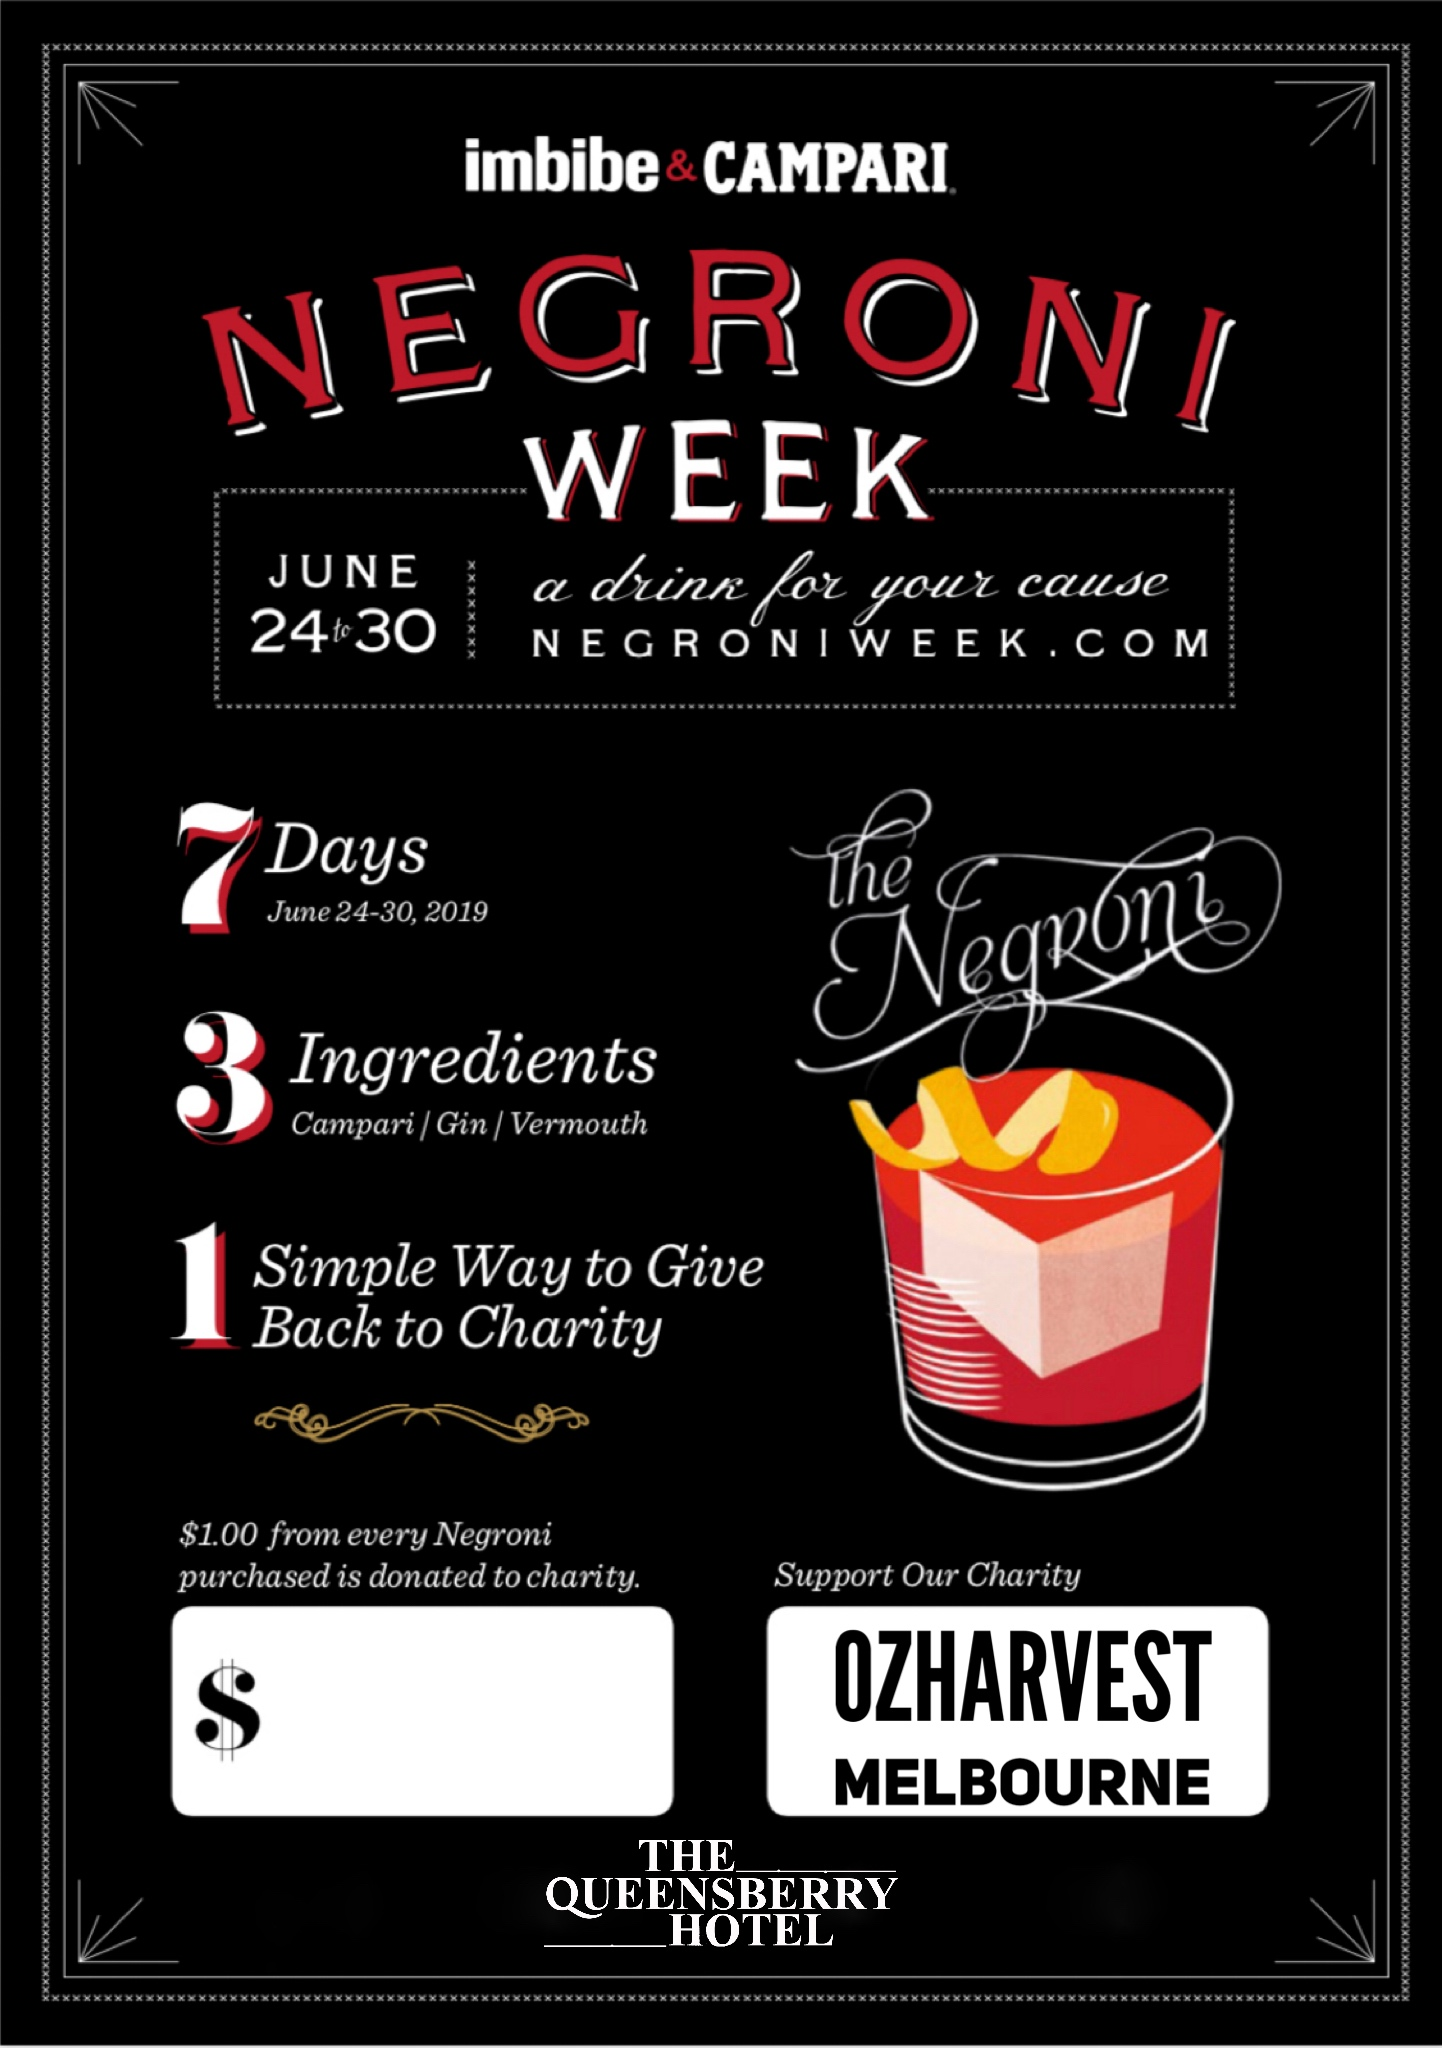 NEGRONI WEEK - It's that time of year again - Negroni Week. Drink whilst supporting our chosen charity - OZHARVEST.Choose from:Original Negroni $12.5Negroni Spagliato $15.0Sloe Groni $15.0$1 from every Negroni sold between Mon 24 June and Sunday June 30 is donated to OzHarvest.We'll drink to that :)